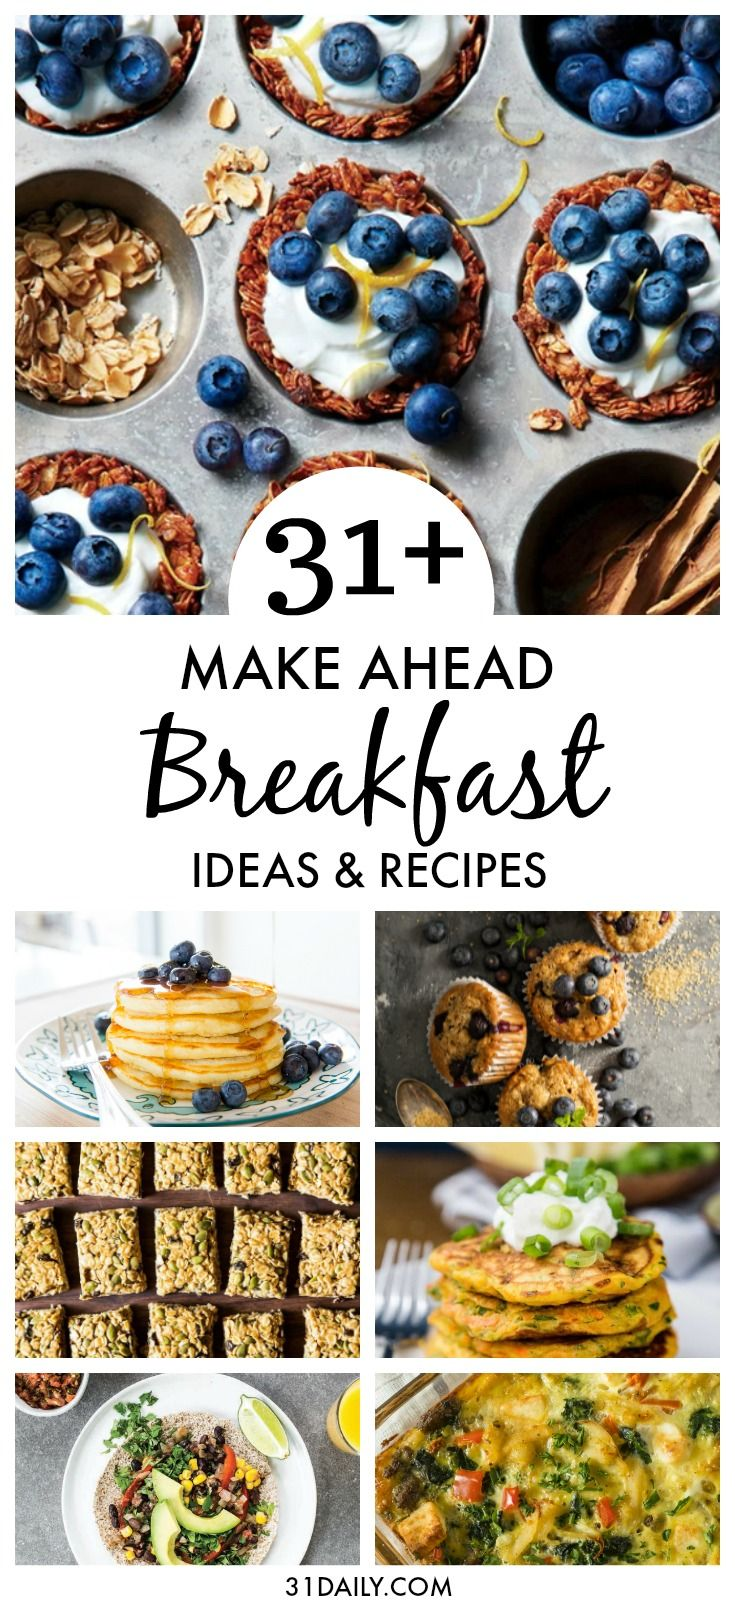 31+ Incredible Make Ahead Breakfast Recipes and Ideas images